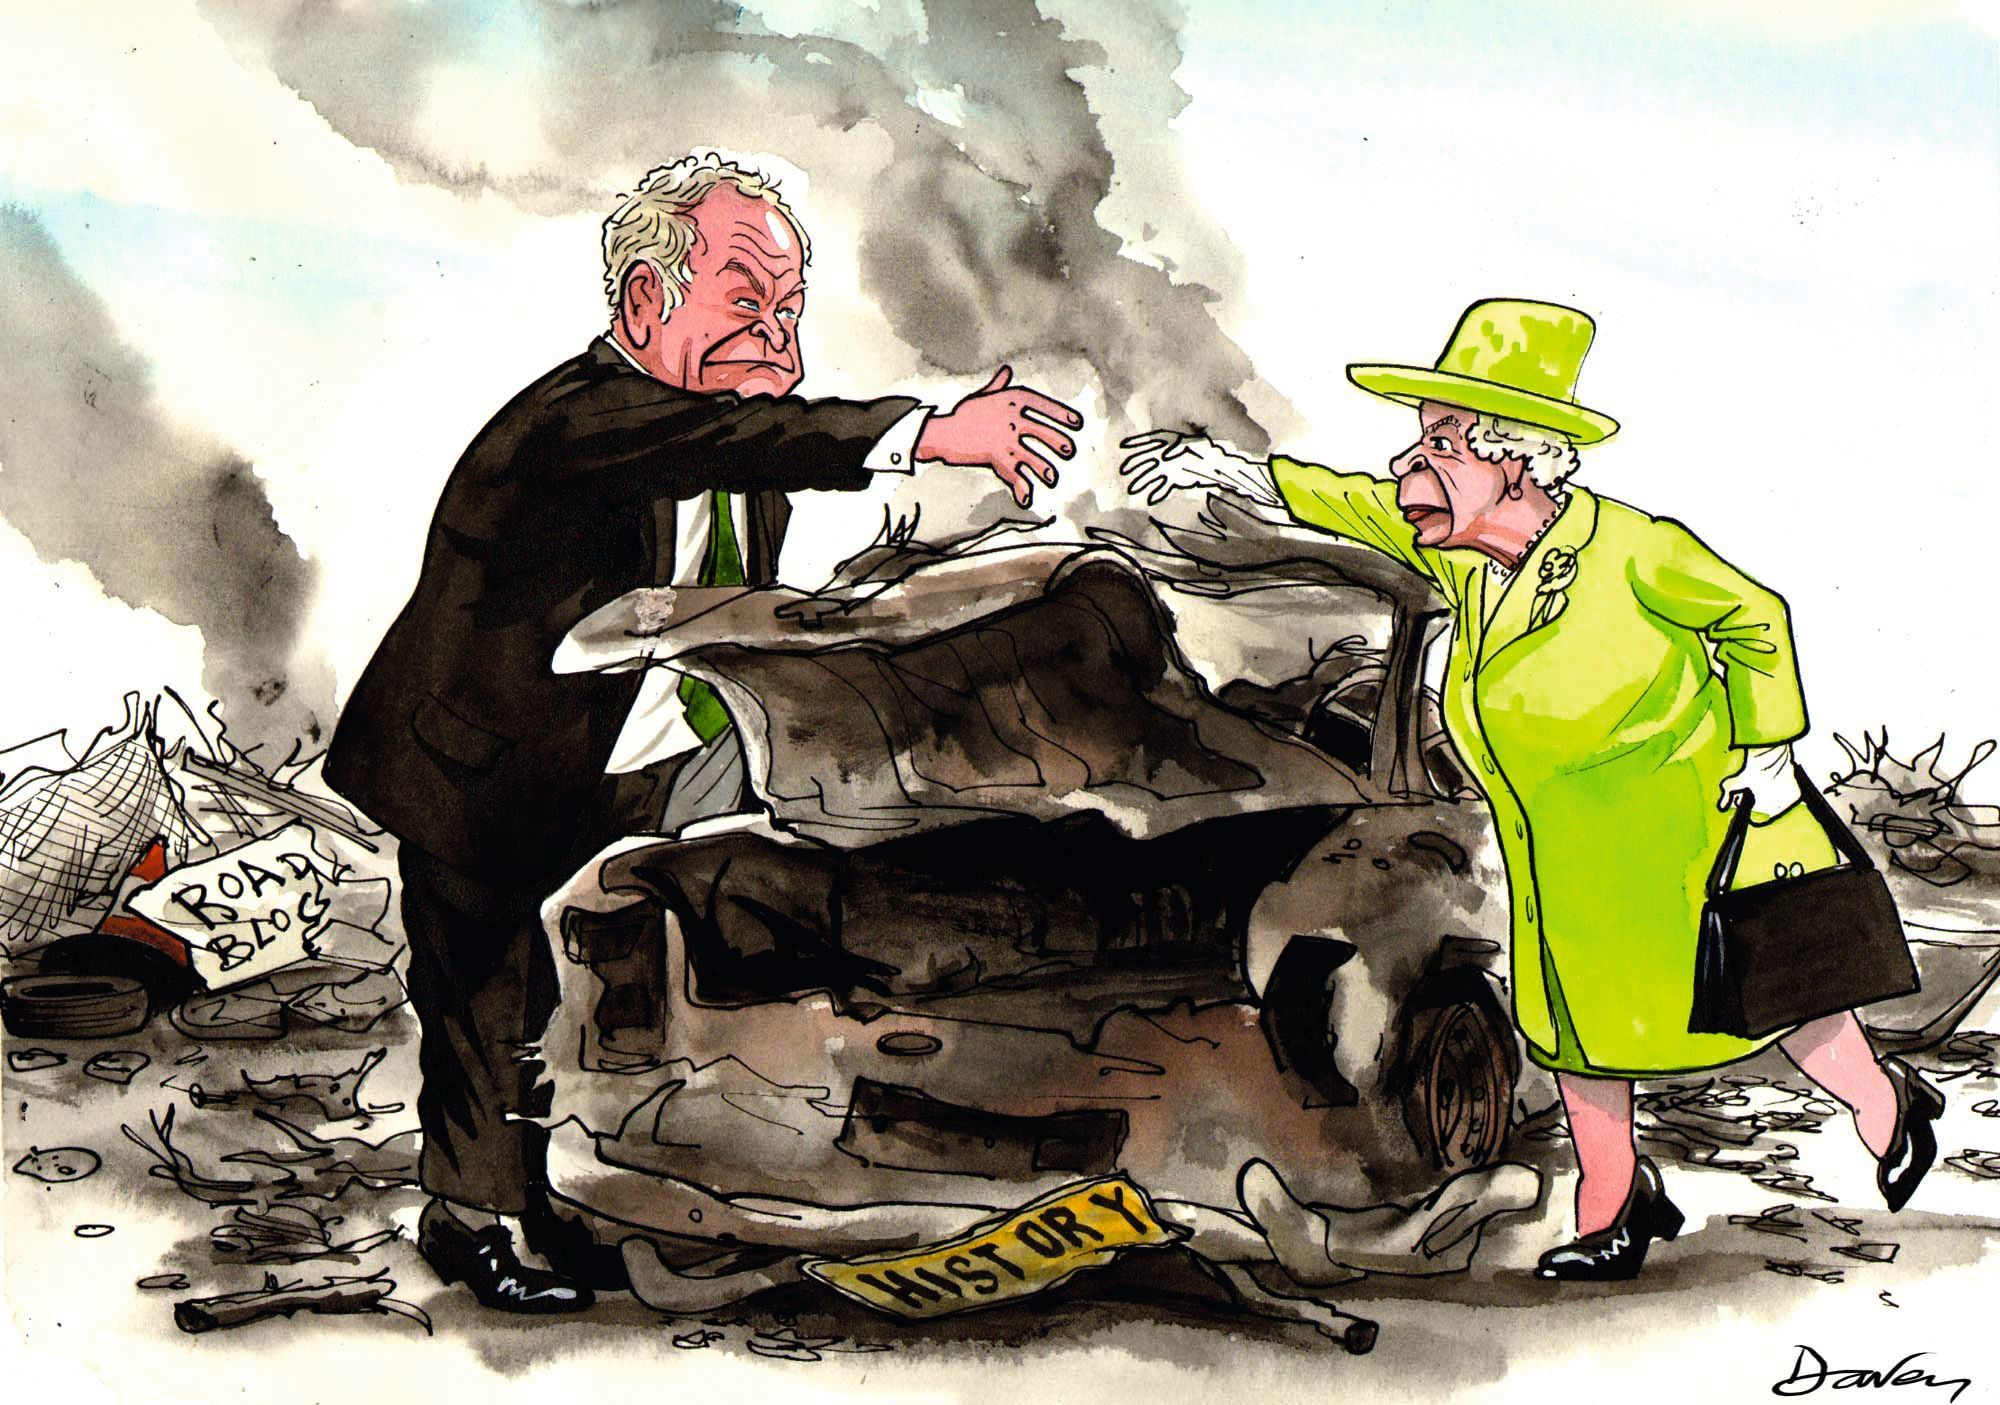 The Queen and Martin McGuinness shaking hands in 2012, Andy Daven, 2012.